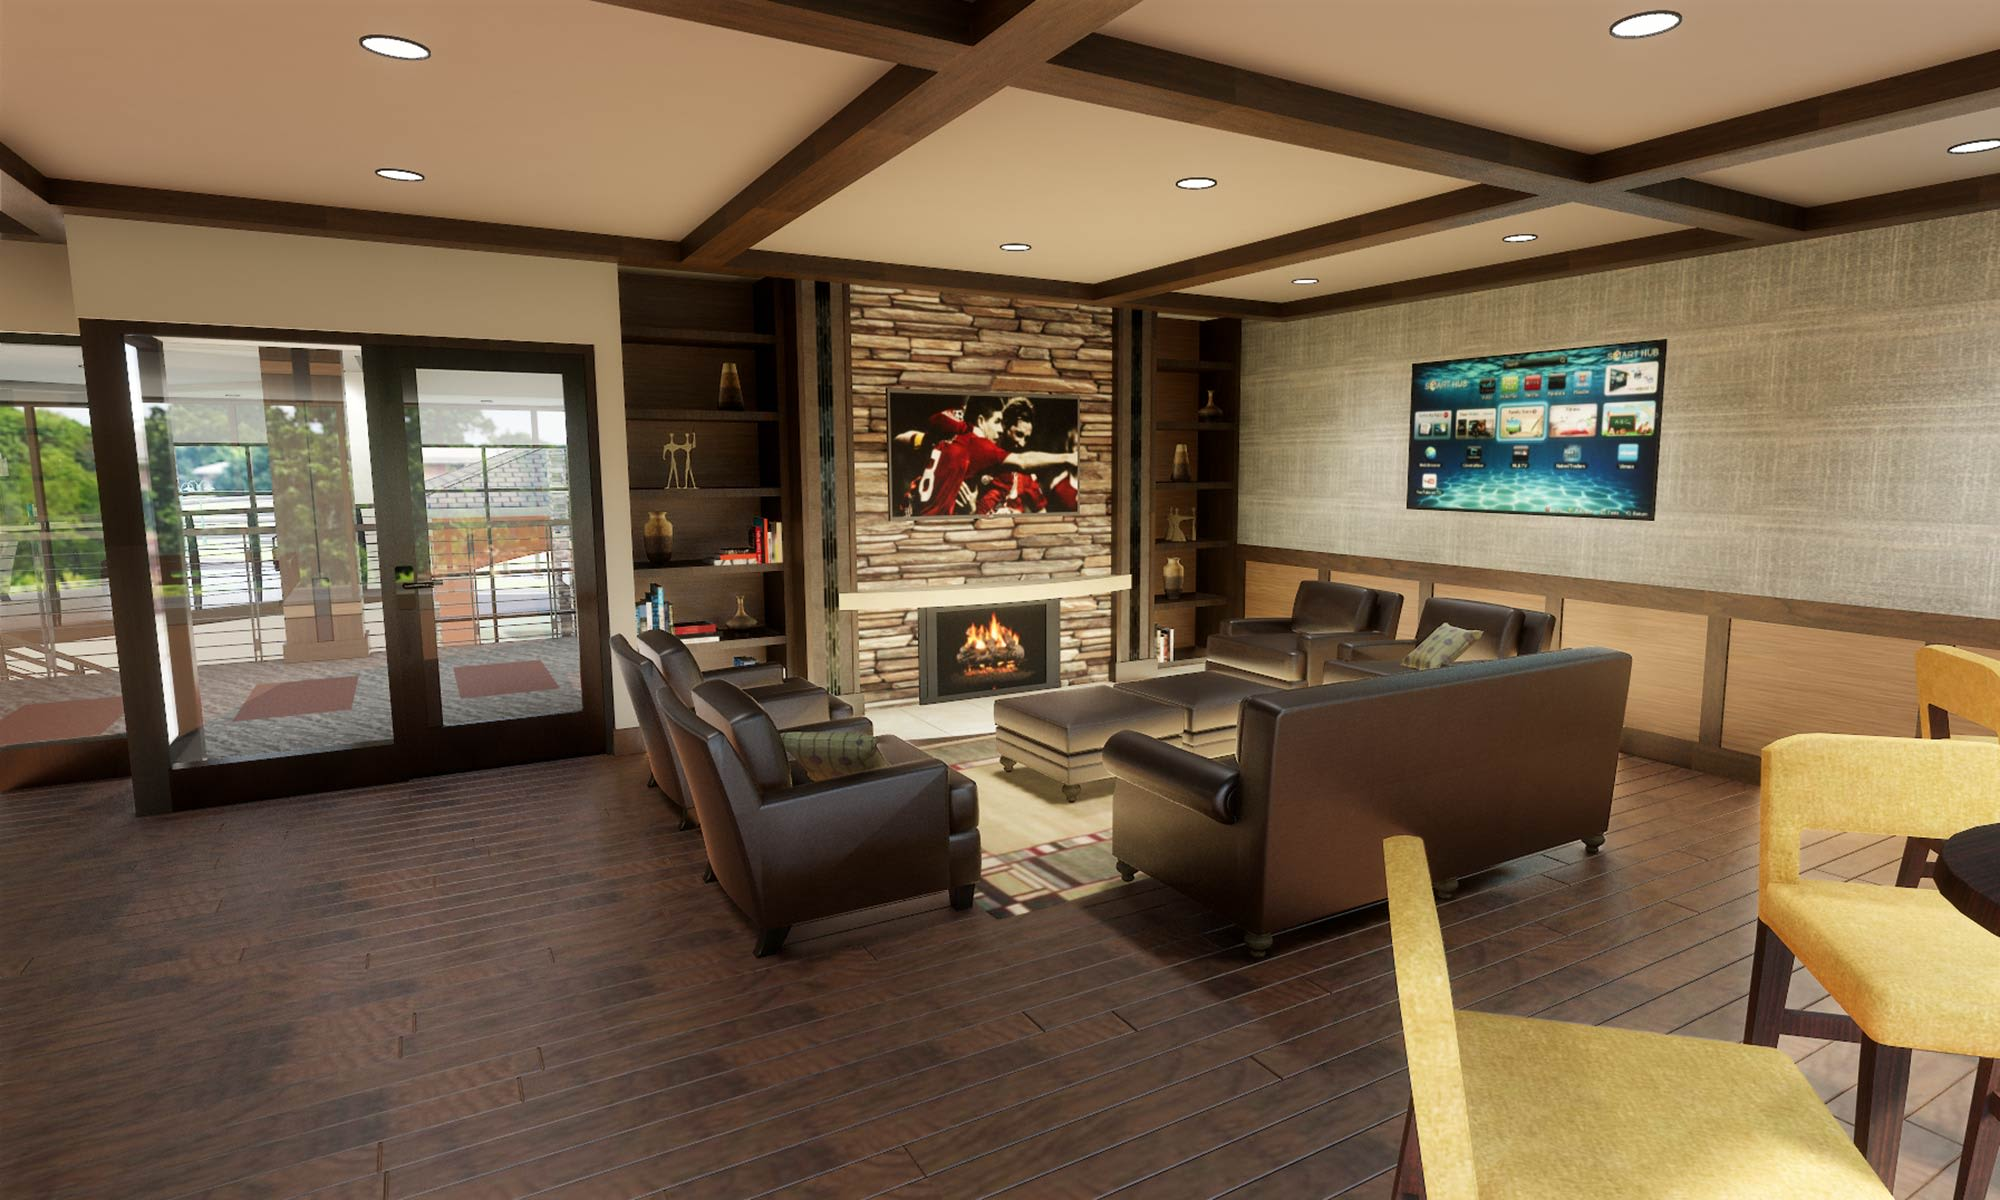 Another interior view of the restaurant and bar at The Fairways of Ironhorse in Leawood